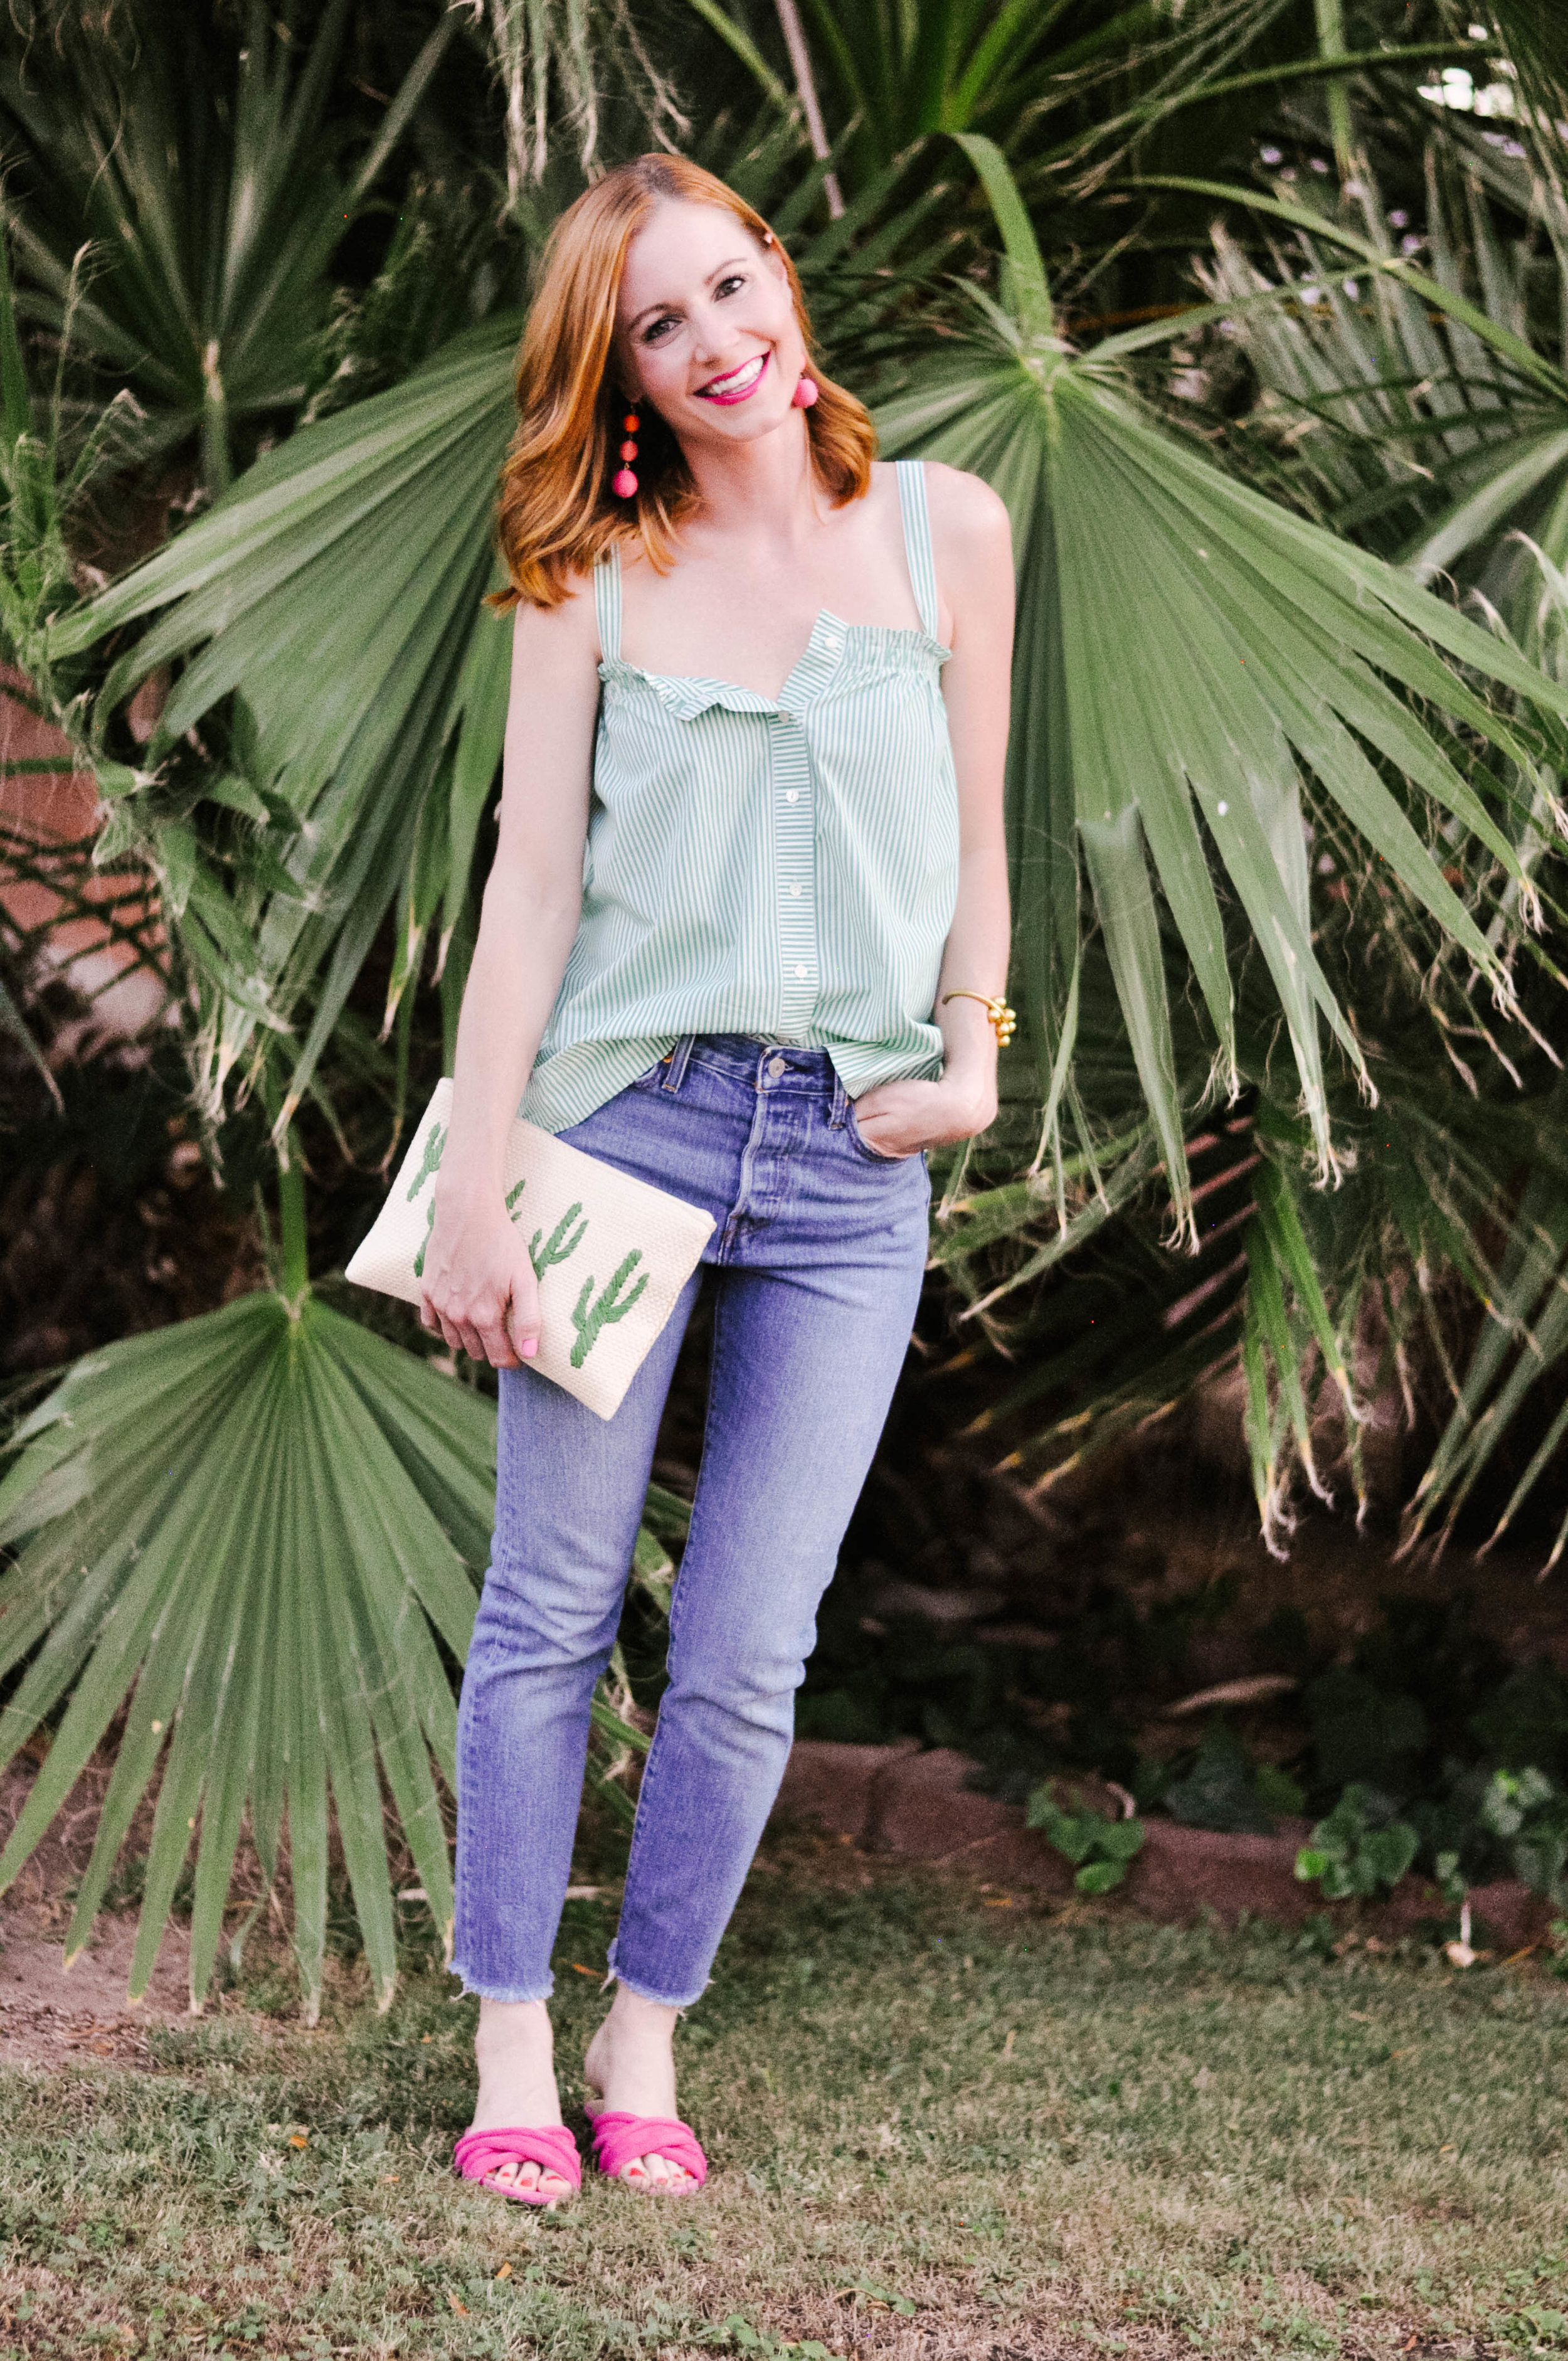 Woman Smiling in Casual Summer Outfit